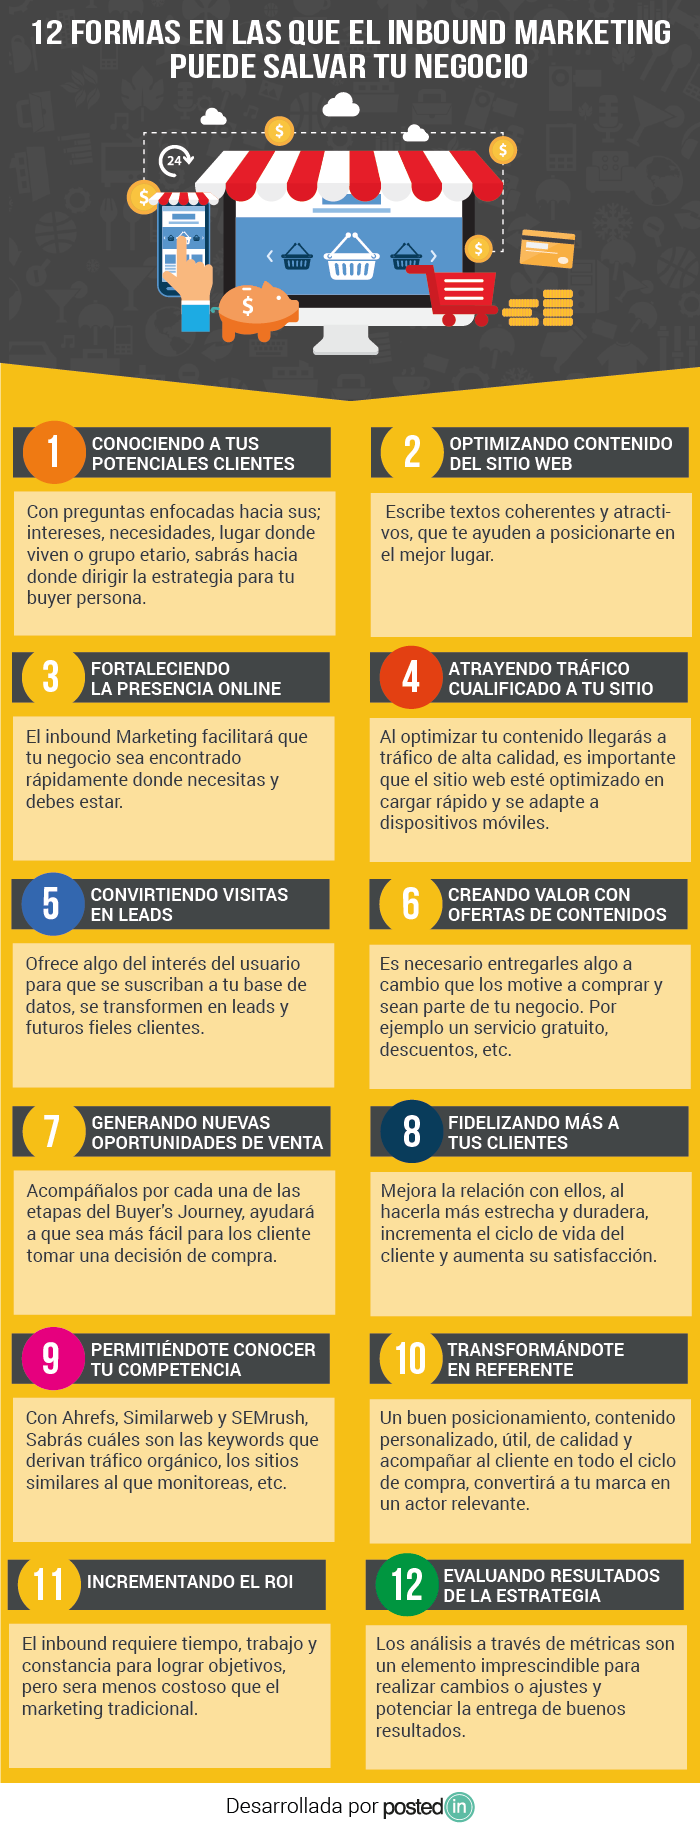 12 formas en las que el Inbound Marketing puede salvar tu empresa #infografia #marketing